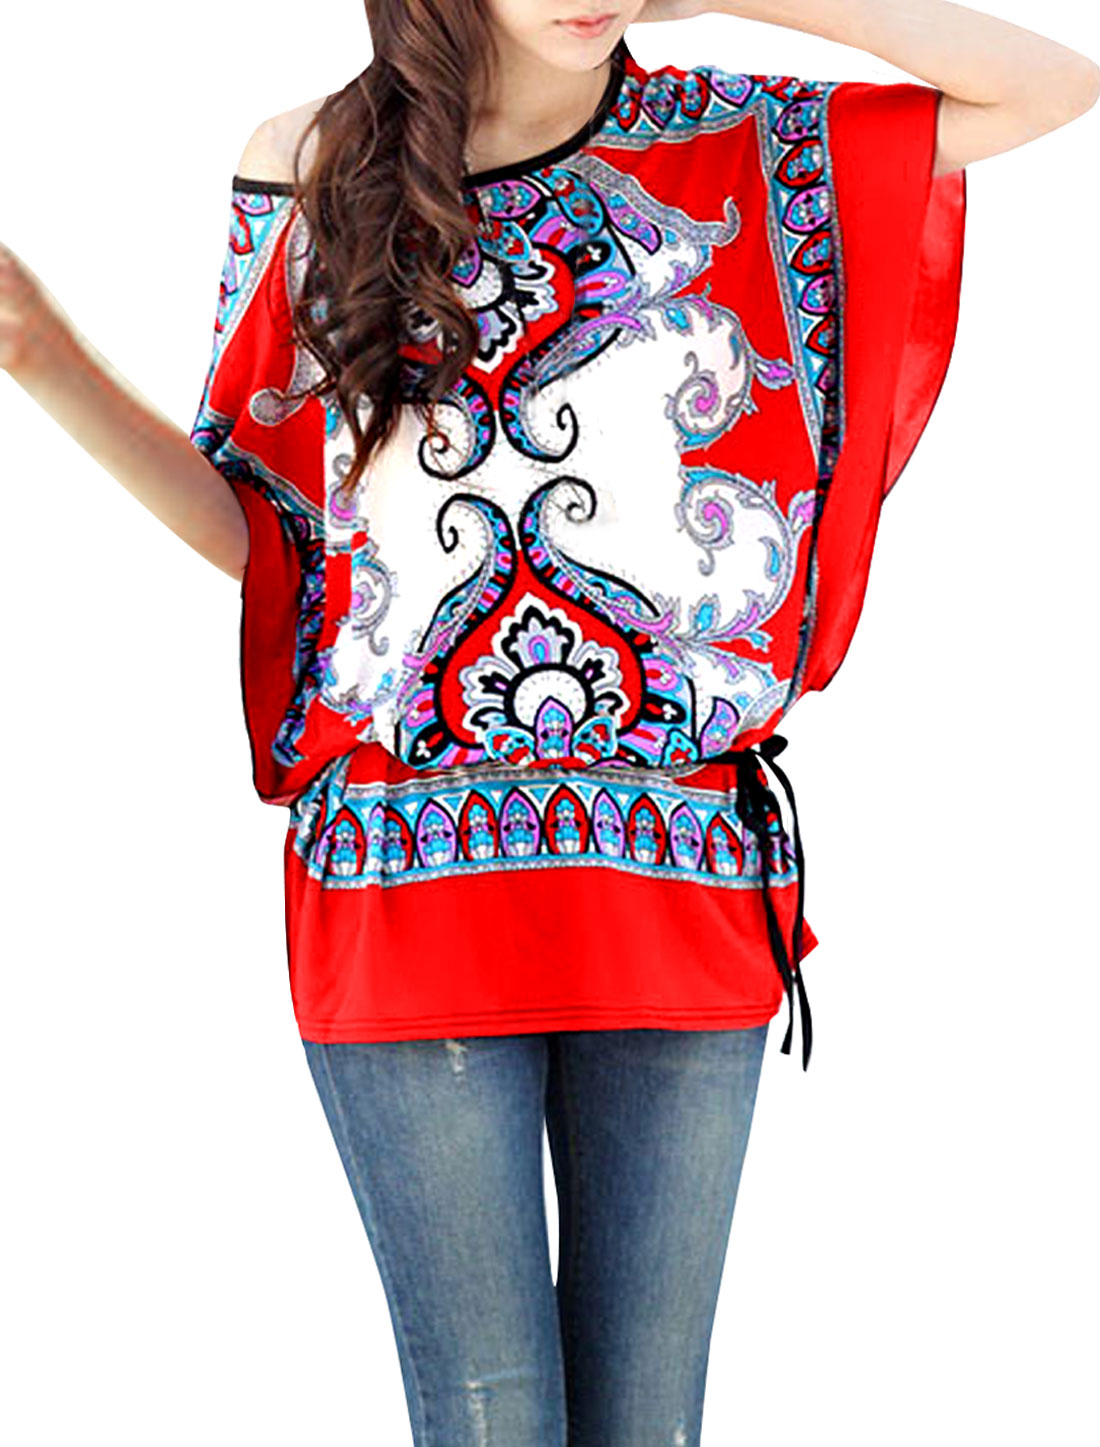 Ladies Round Neck Multicolor Batwing Sleeve Pullover Tunic Shirt L Red